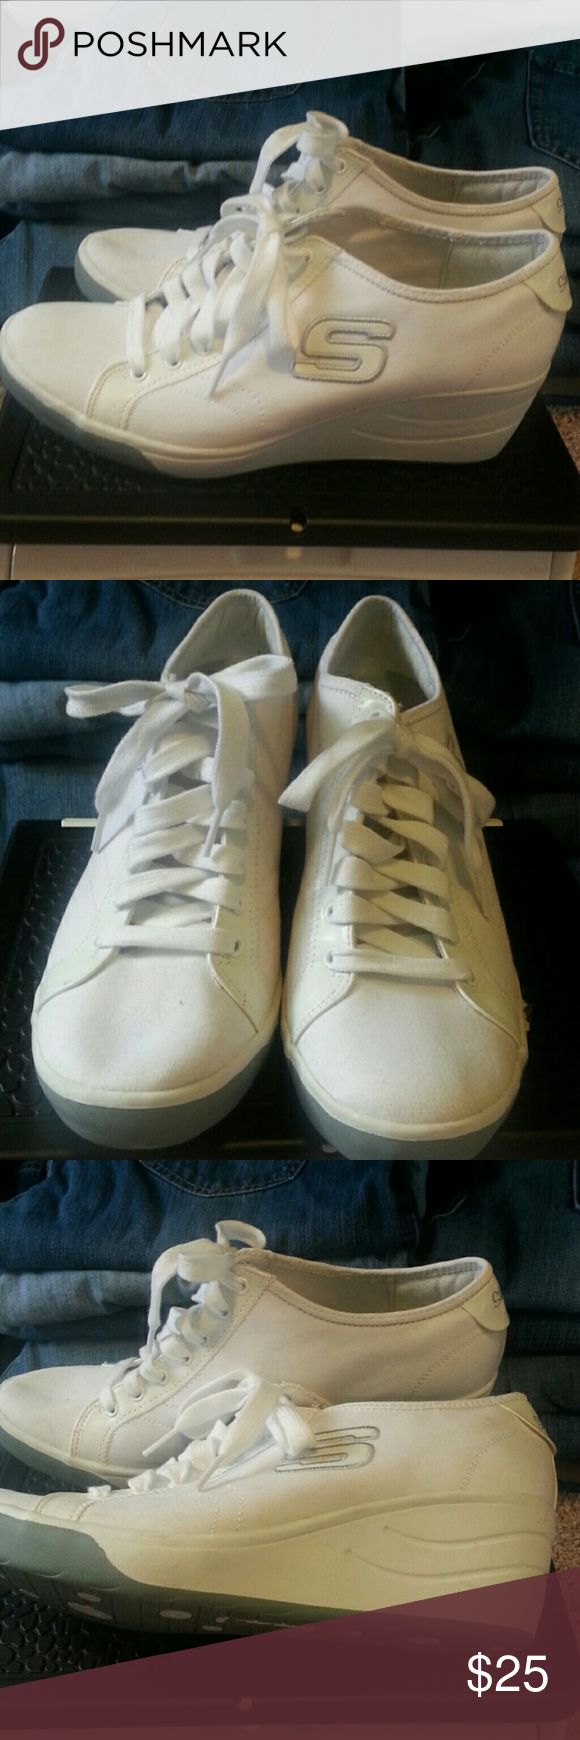 Skechers wedge sneakers white canvas women's 11 Skechers wedge sneakers white canvas women's size 11 good condition Skechers Shoes Sneakers